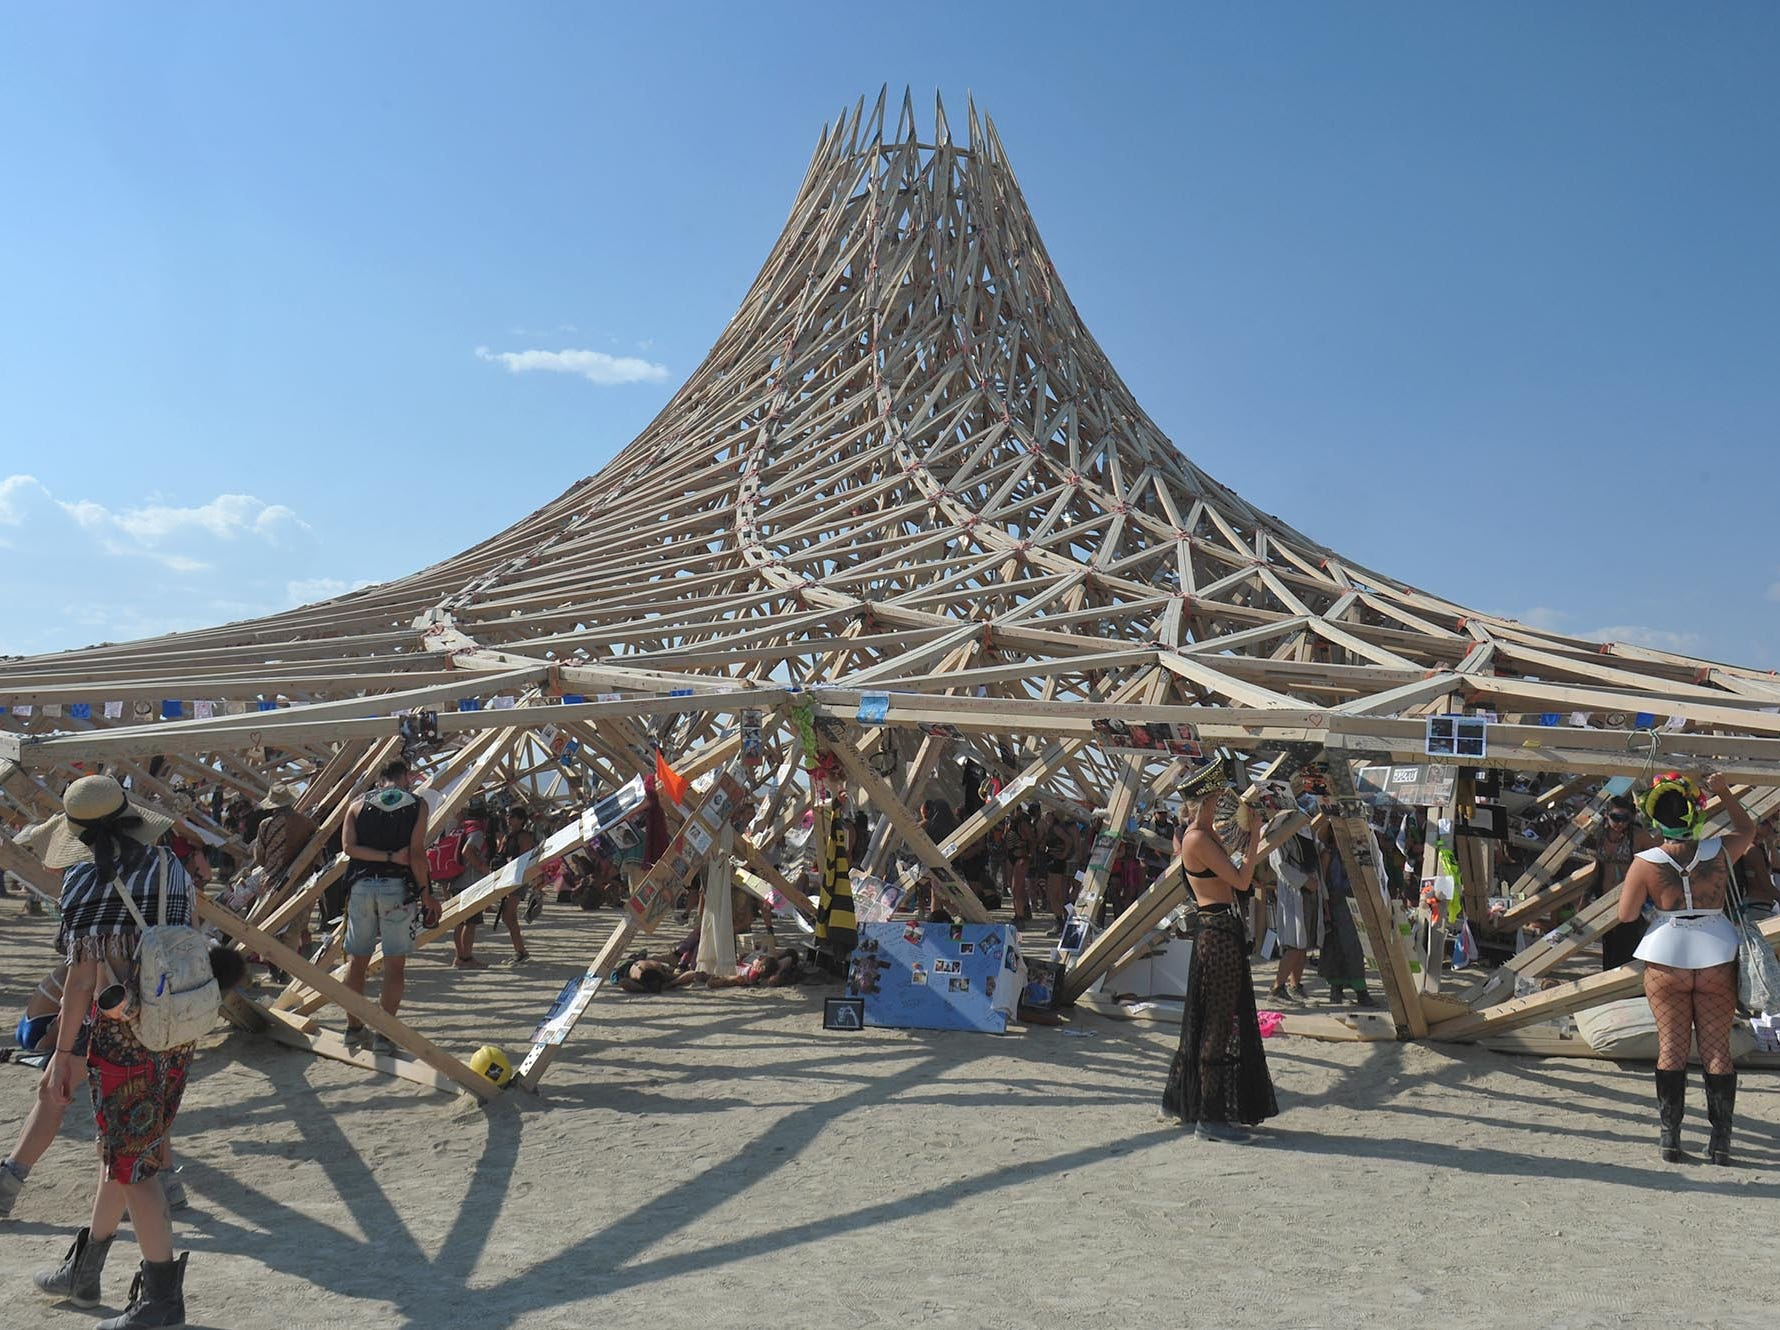 Images from Galaxia, the 2018 Burning Man Temple.